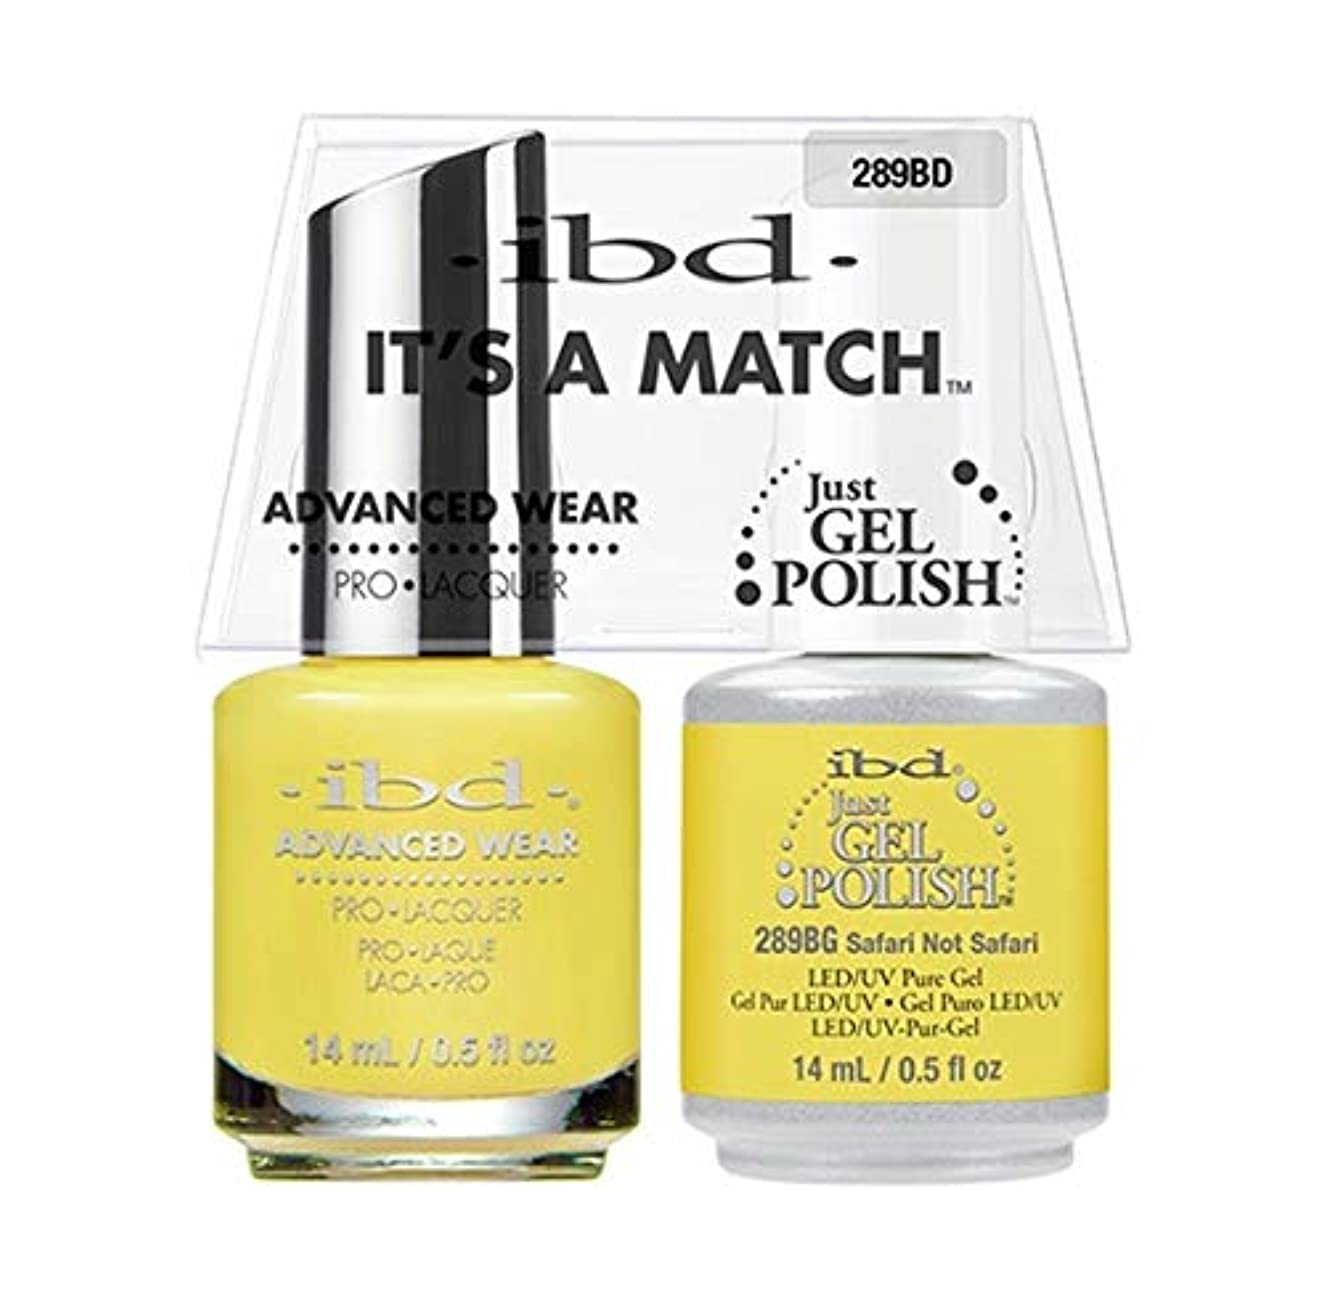 ibd - It's A Match - Duo Pack - Serengeti Soul Collection - Safari Not Safari - 14ml / 0.5oz each